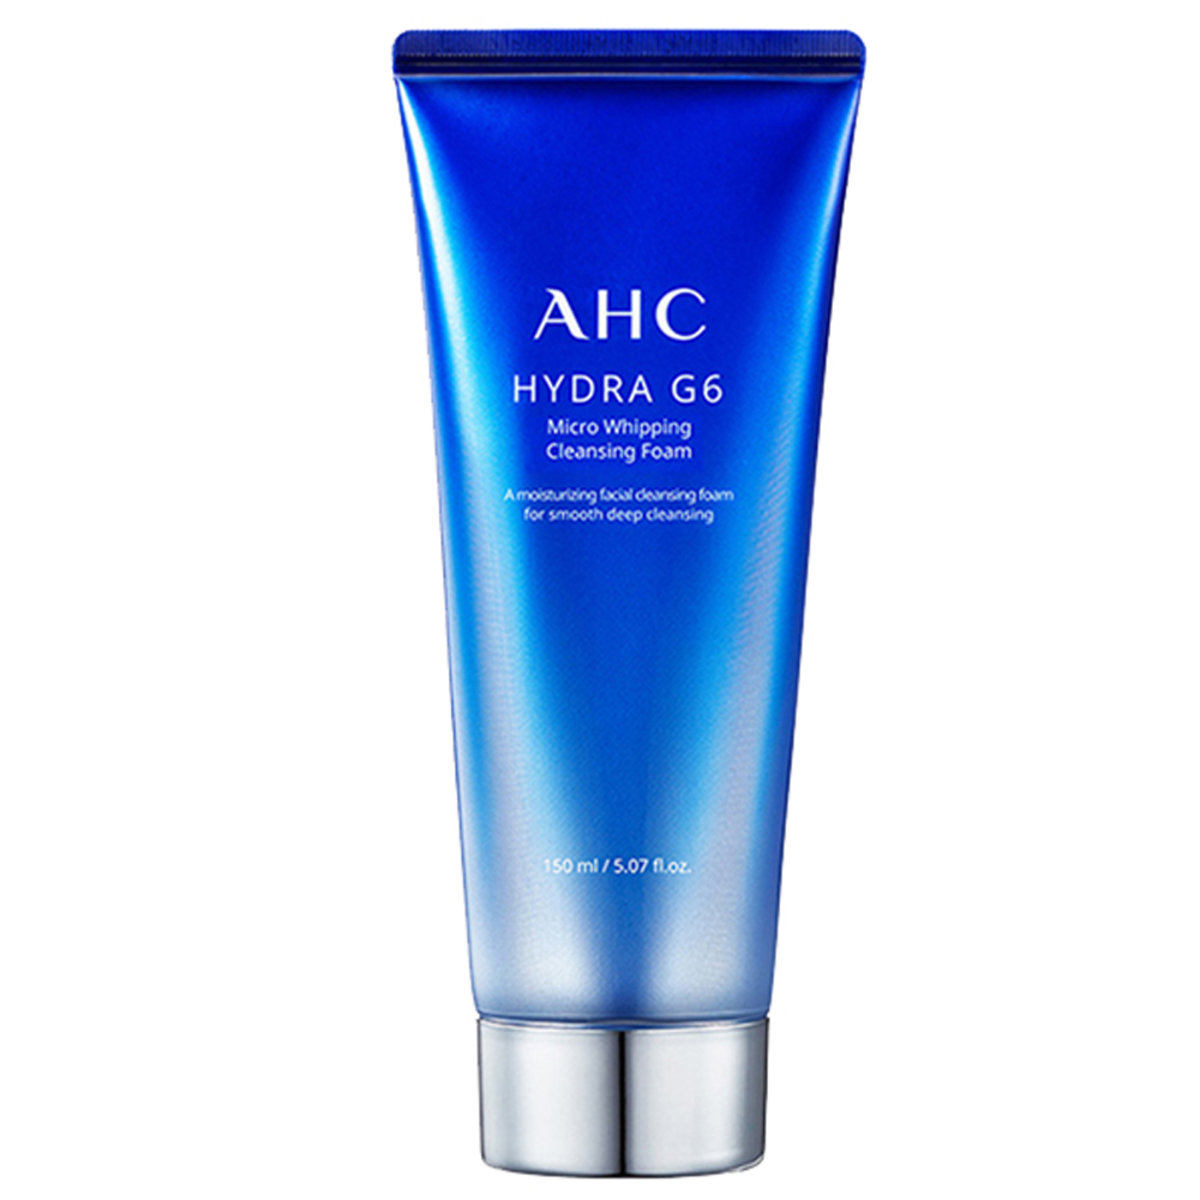 Hydra G6 Micro Whipping Cleansing Foam 150ml (8809611681811)